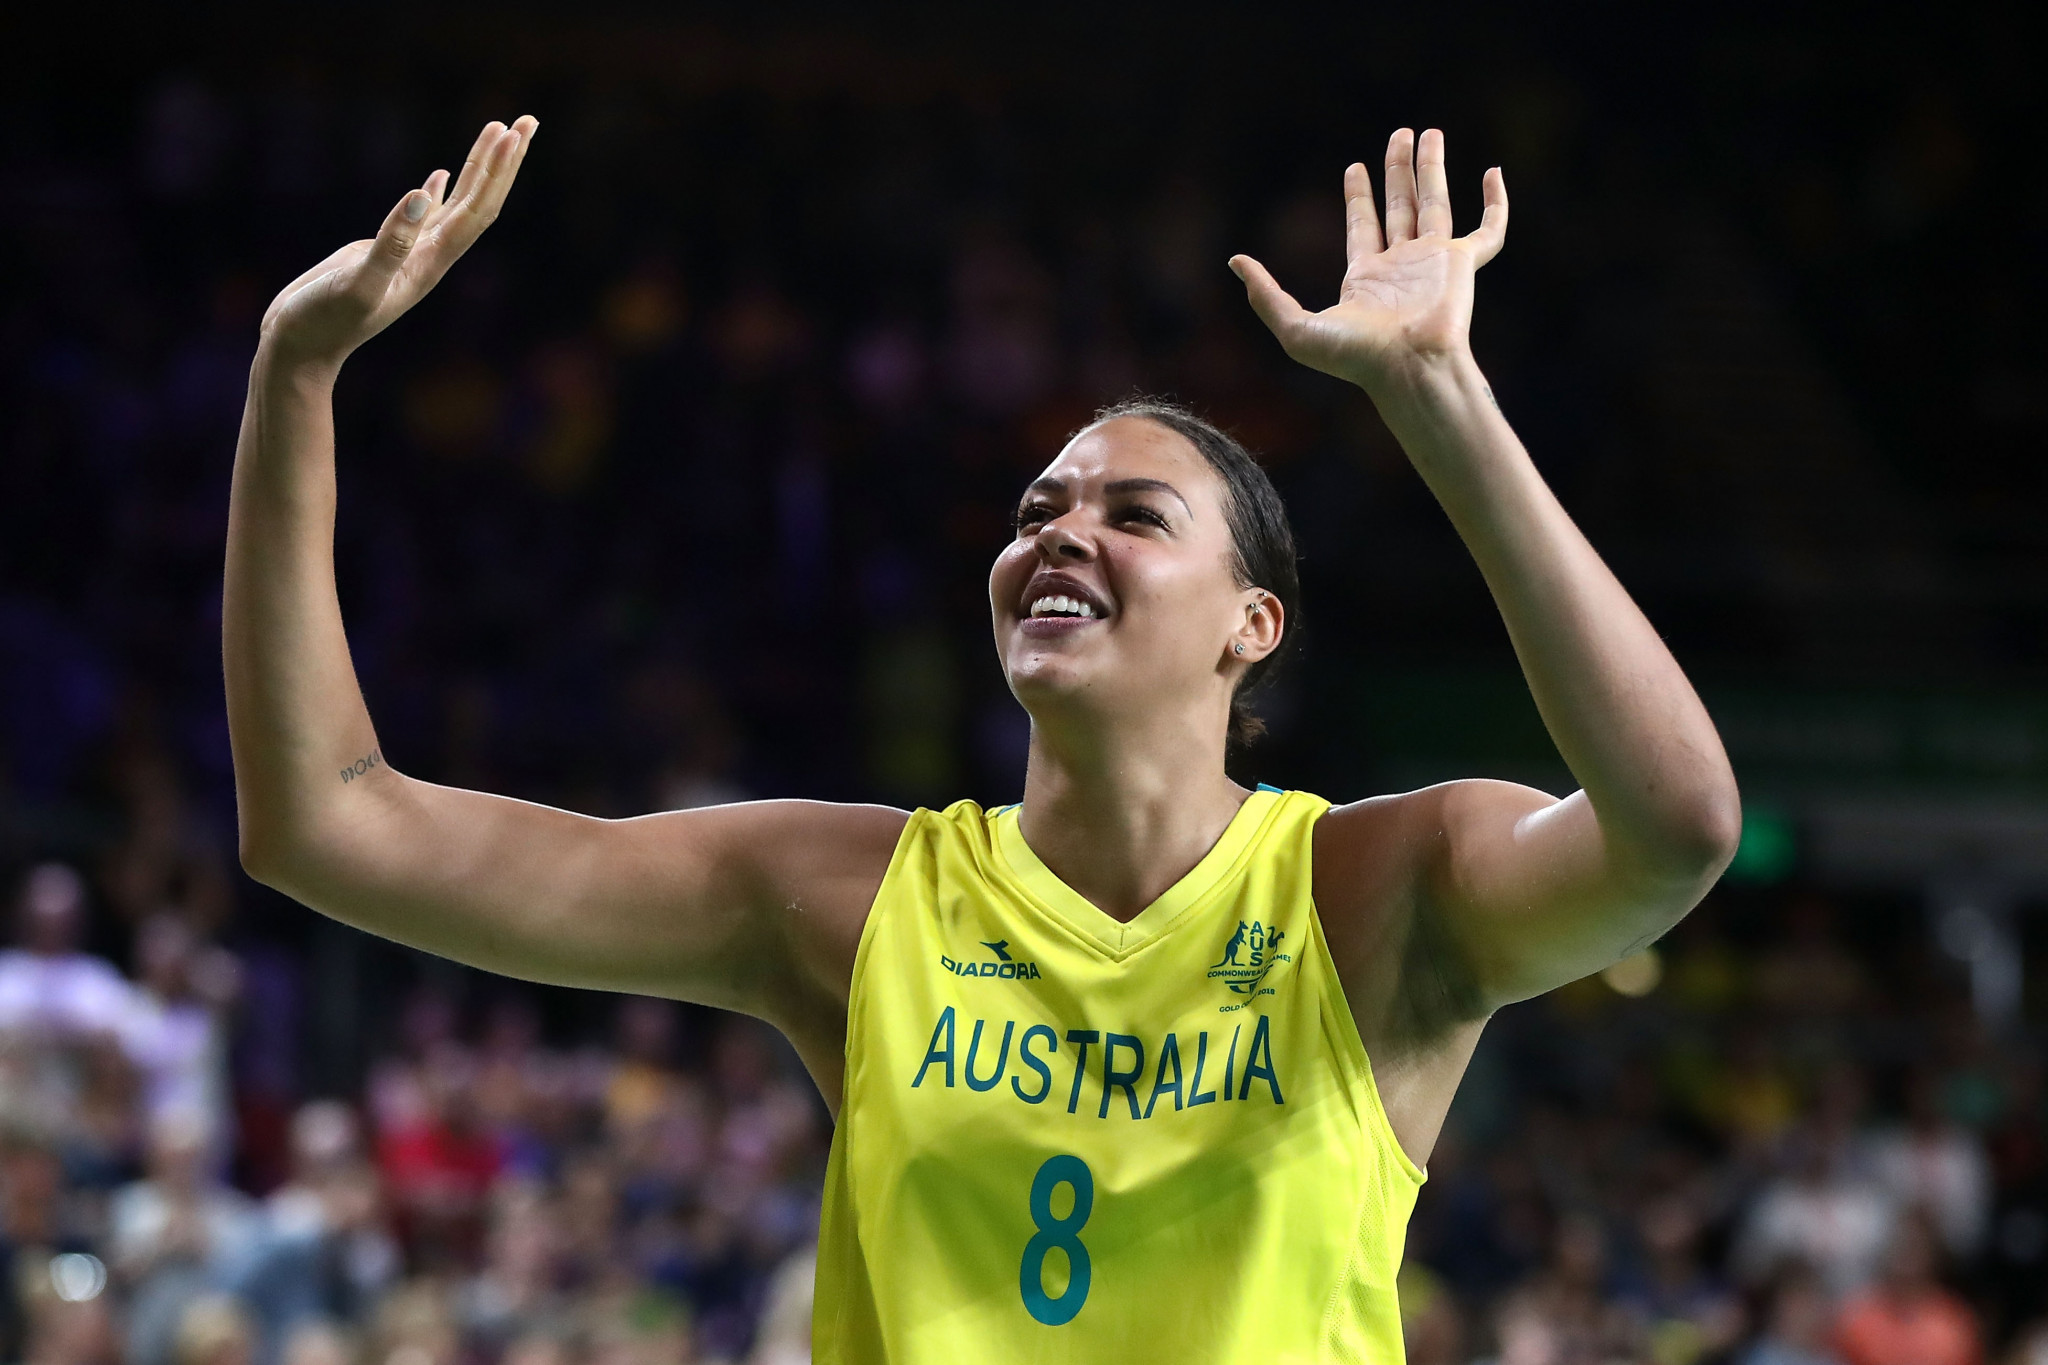 Liz Cambage has criticised the lack of diversity in a recent photoshoot from an Australian Olympic sponsor ©Getty Images